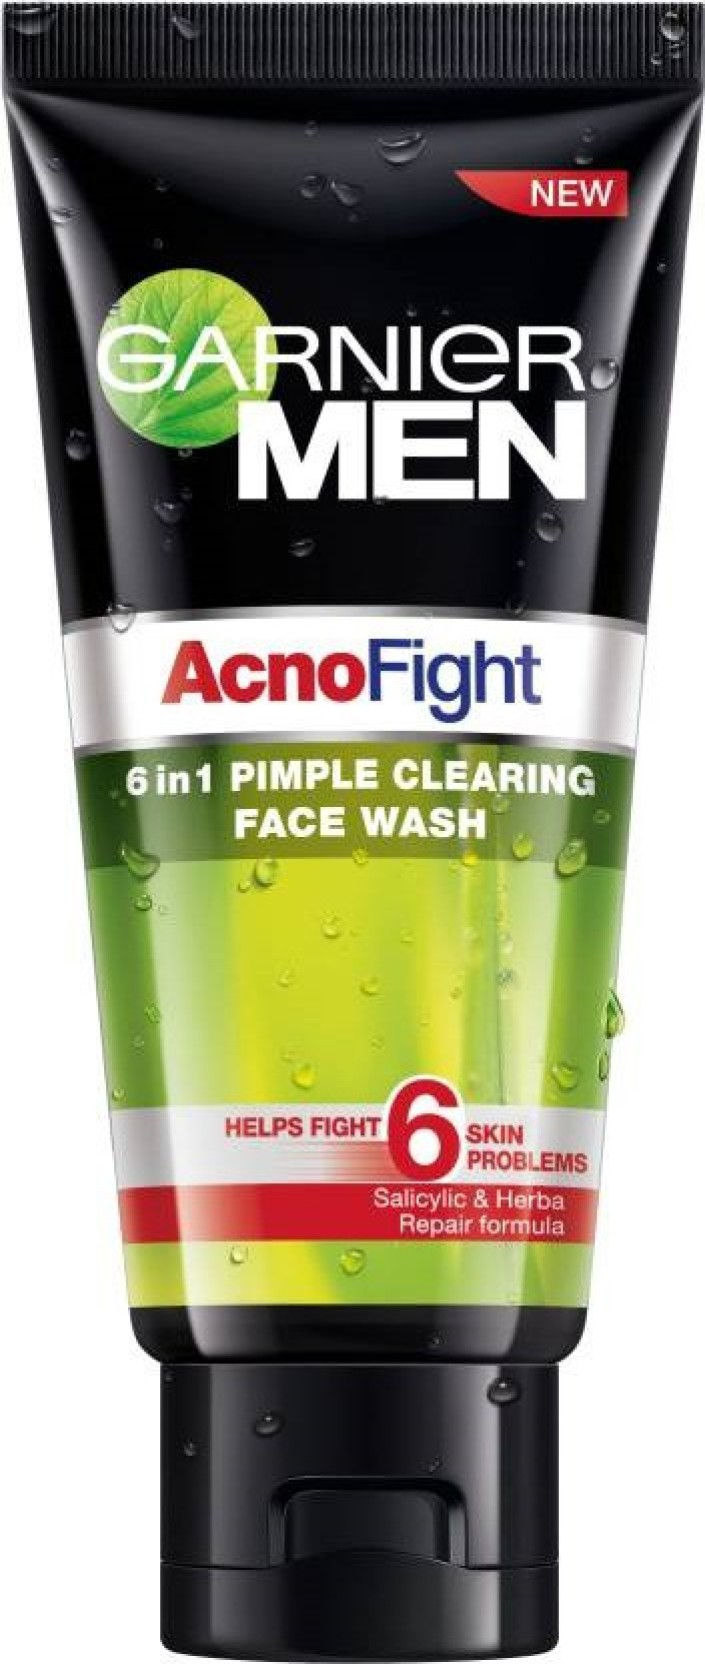 Garnier Acno Fight 6 In1 Pimple Clearing Face Wash Price Pure Active Acne Oil 100ml Home